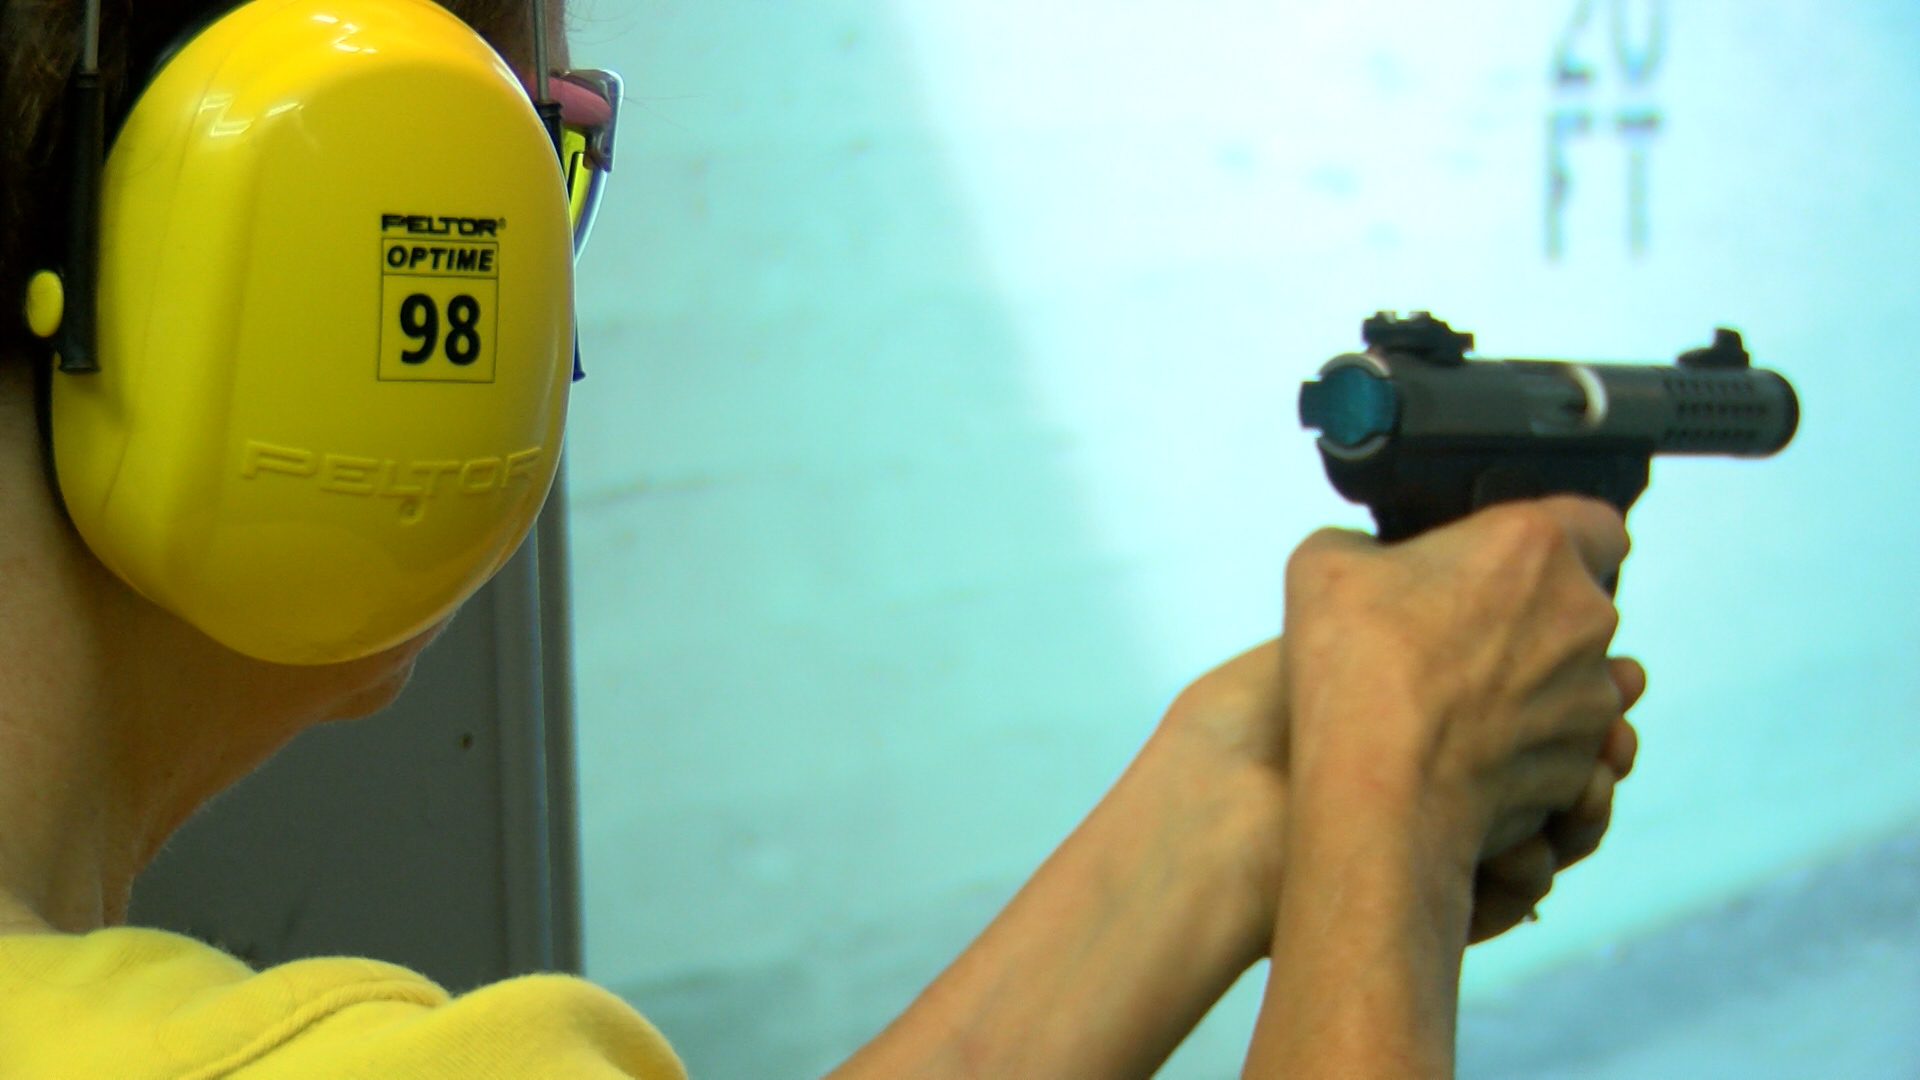 women-firearms-training-for-protection_1439585748149.jpg